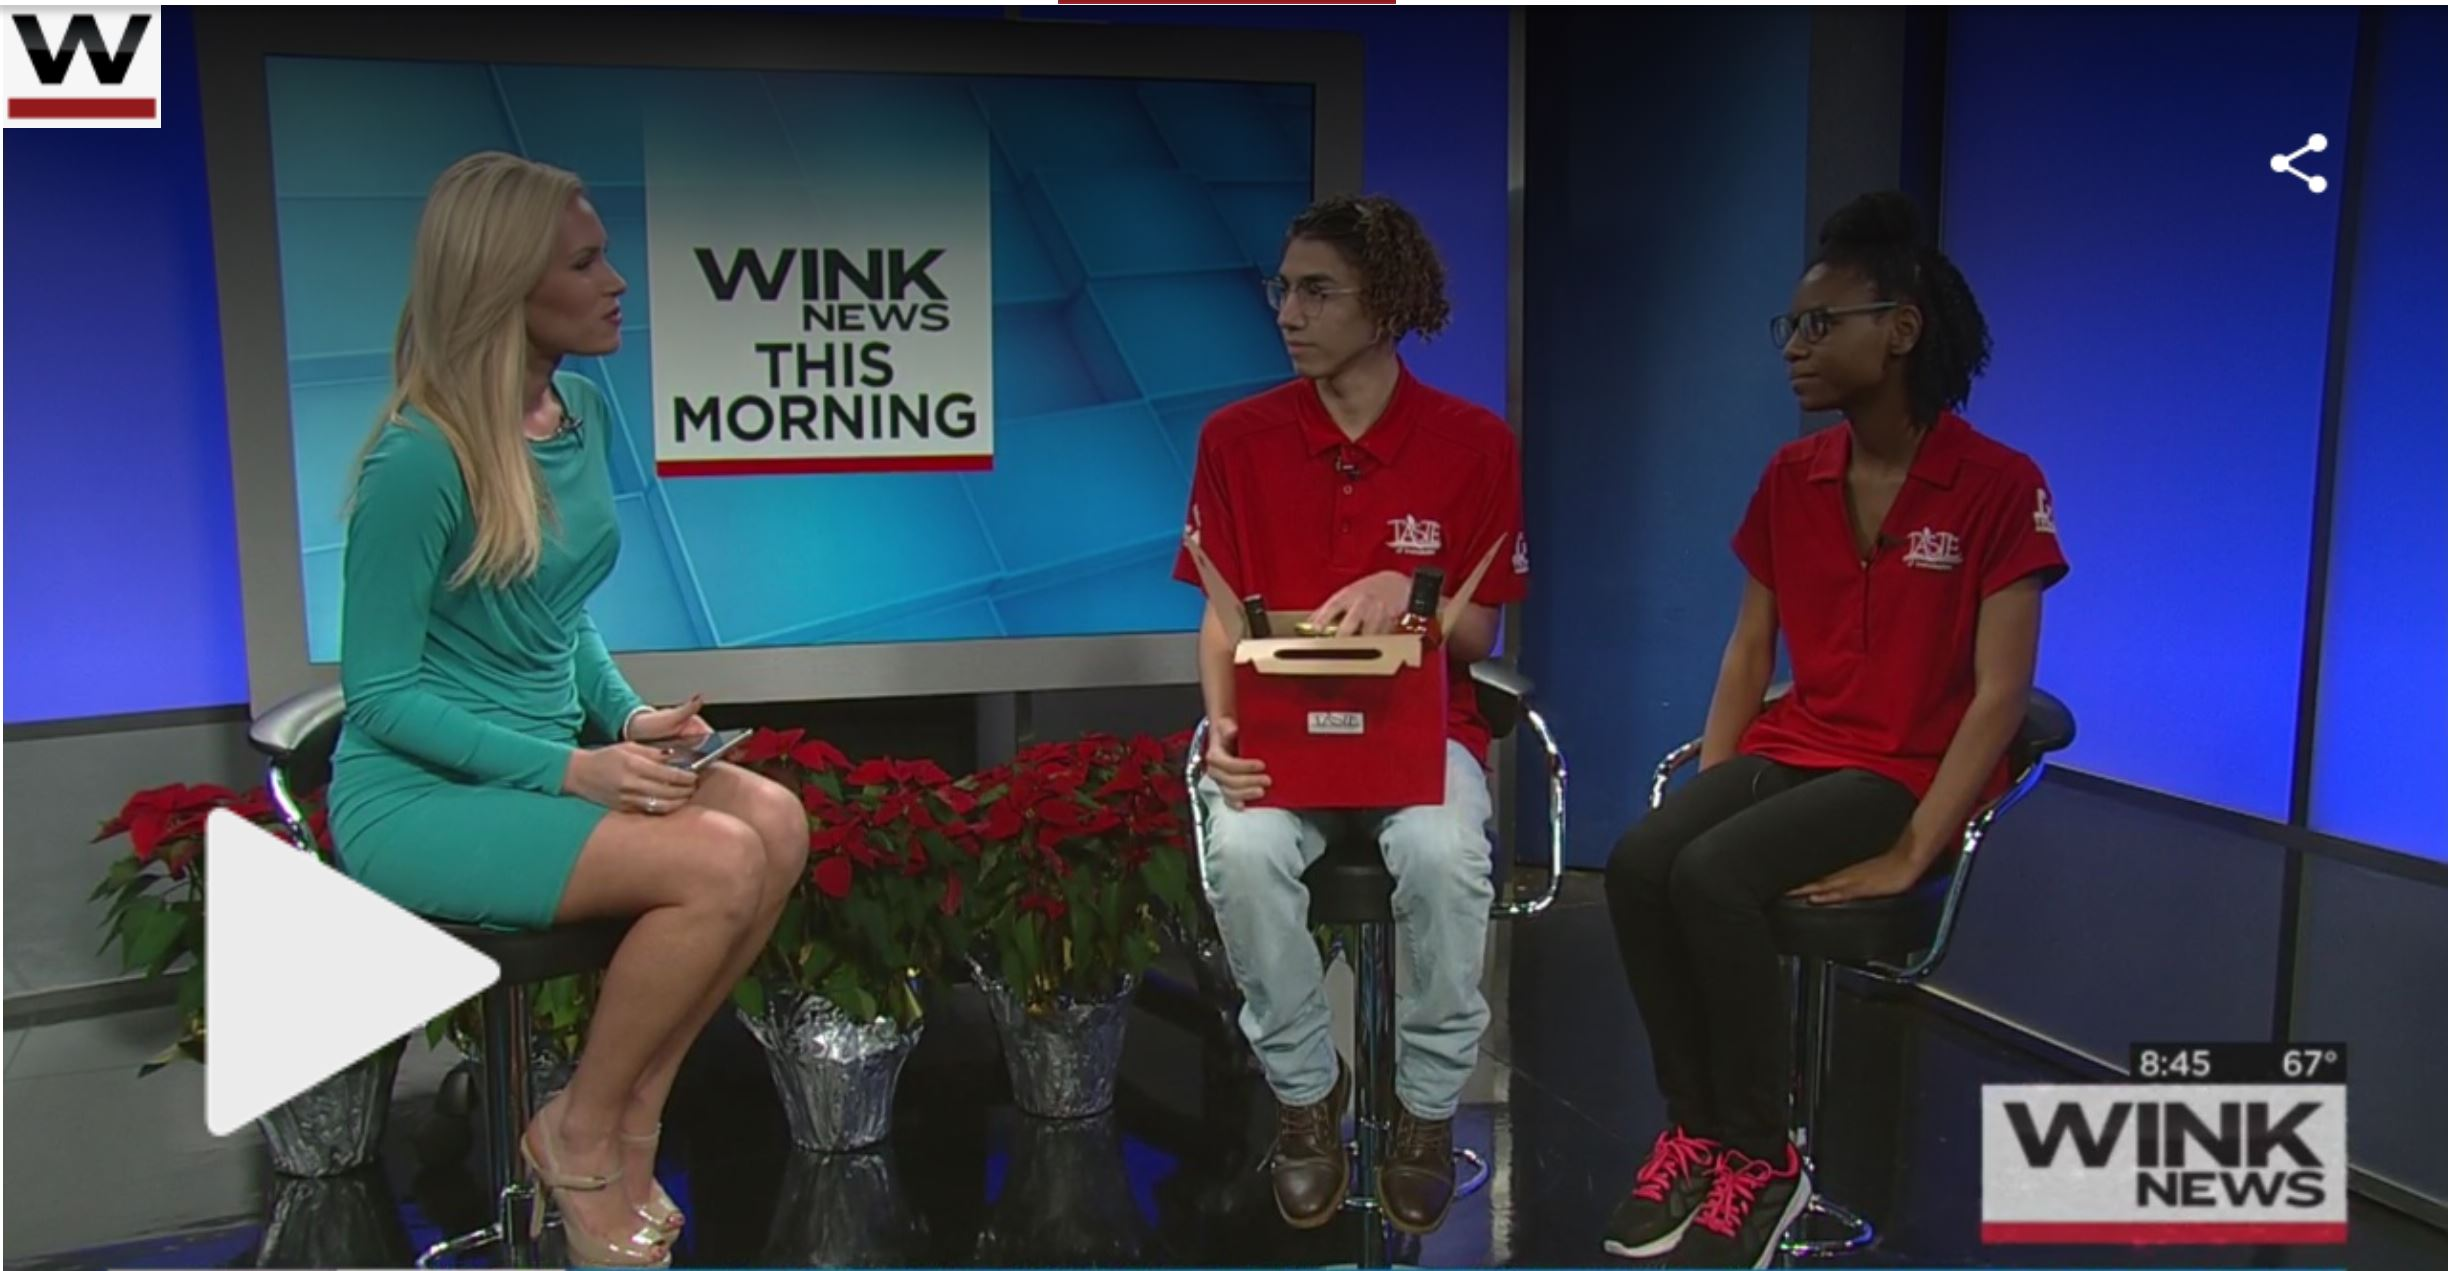 WINK News Gift Baskets Dec 2017